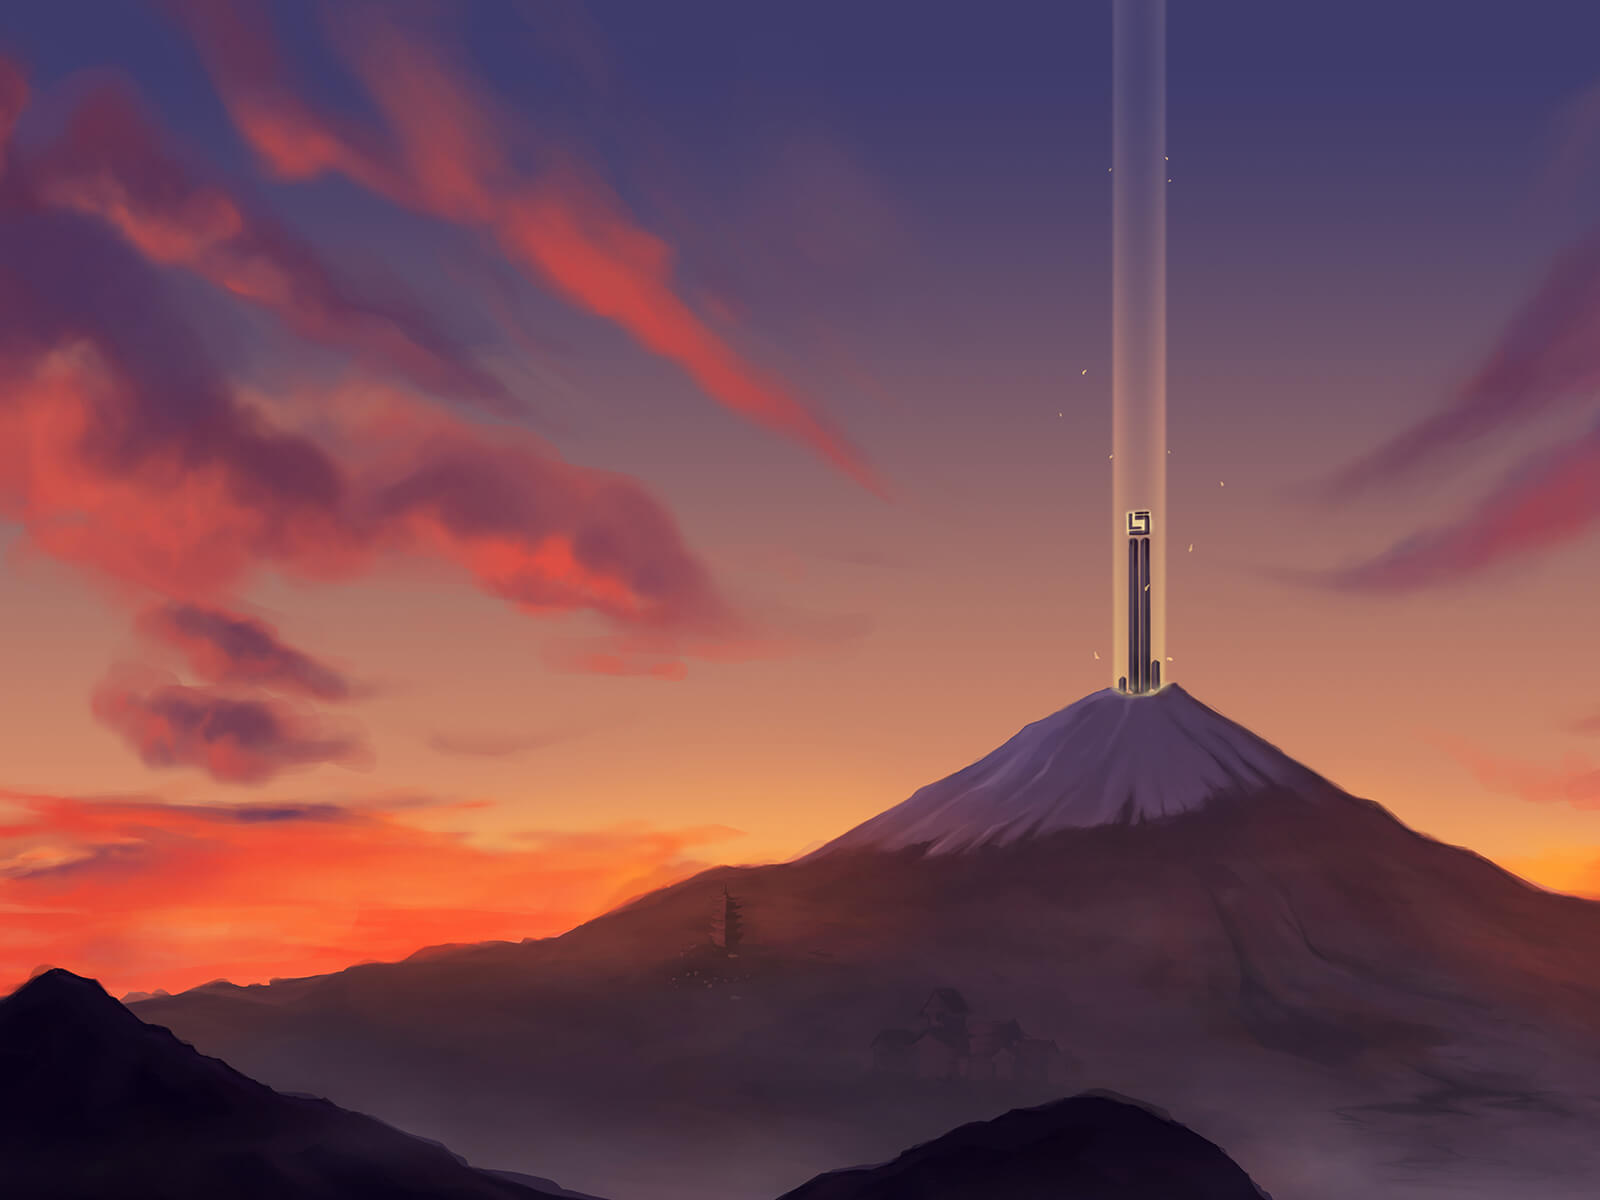 Mount Fuji from a distance during a fiery-red sunset. At its peak, a tall black spire shoots a beacon of light into the air.